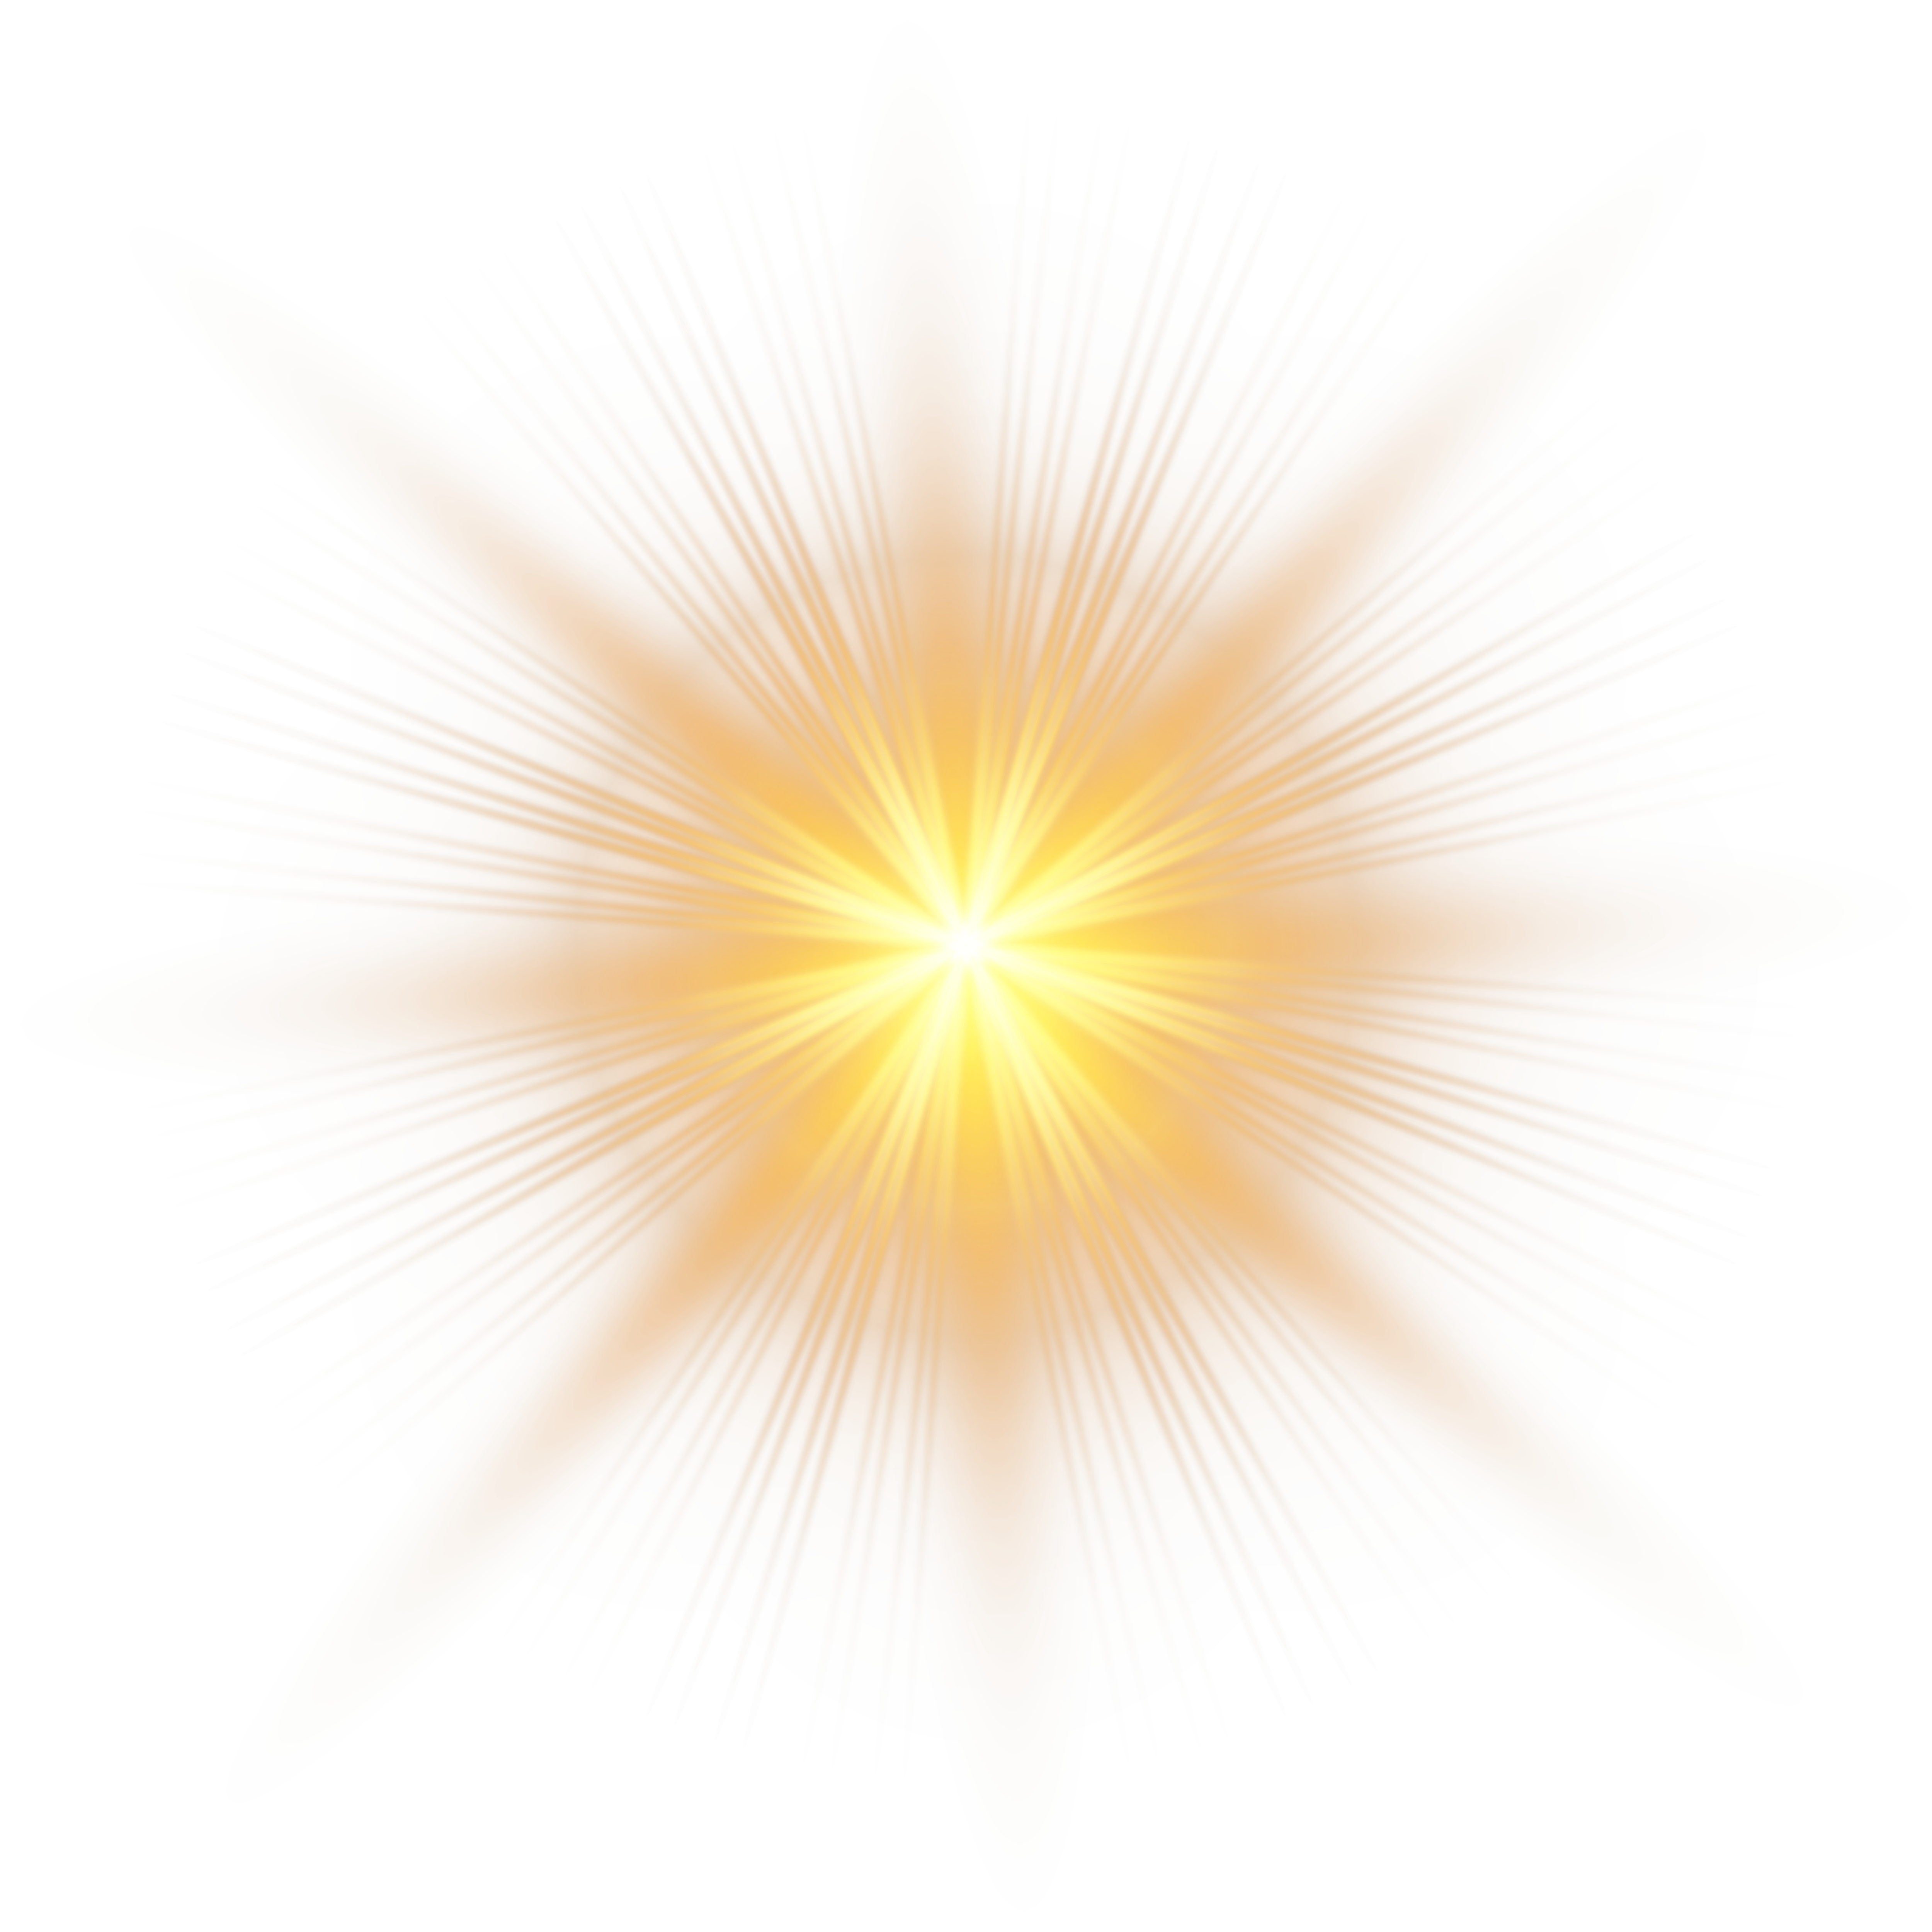 Light effect png. Clip art image gallery